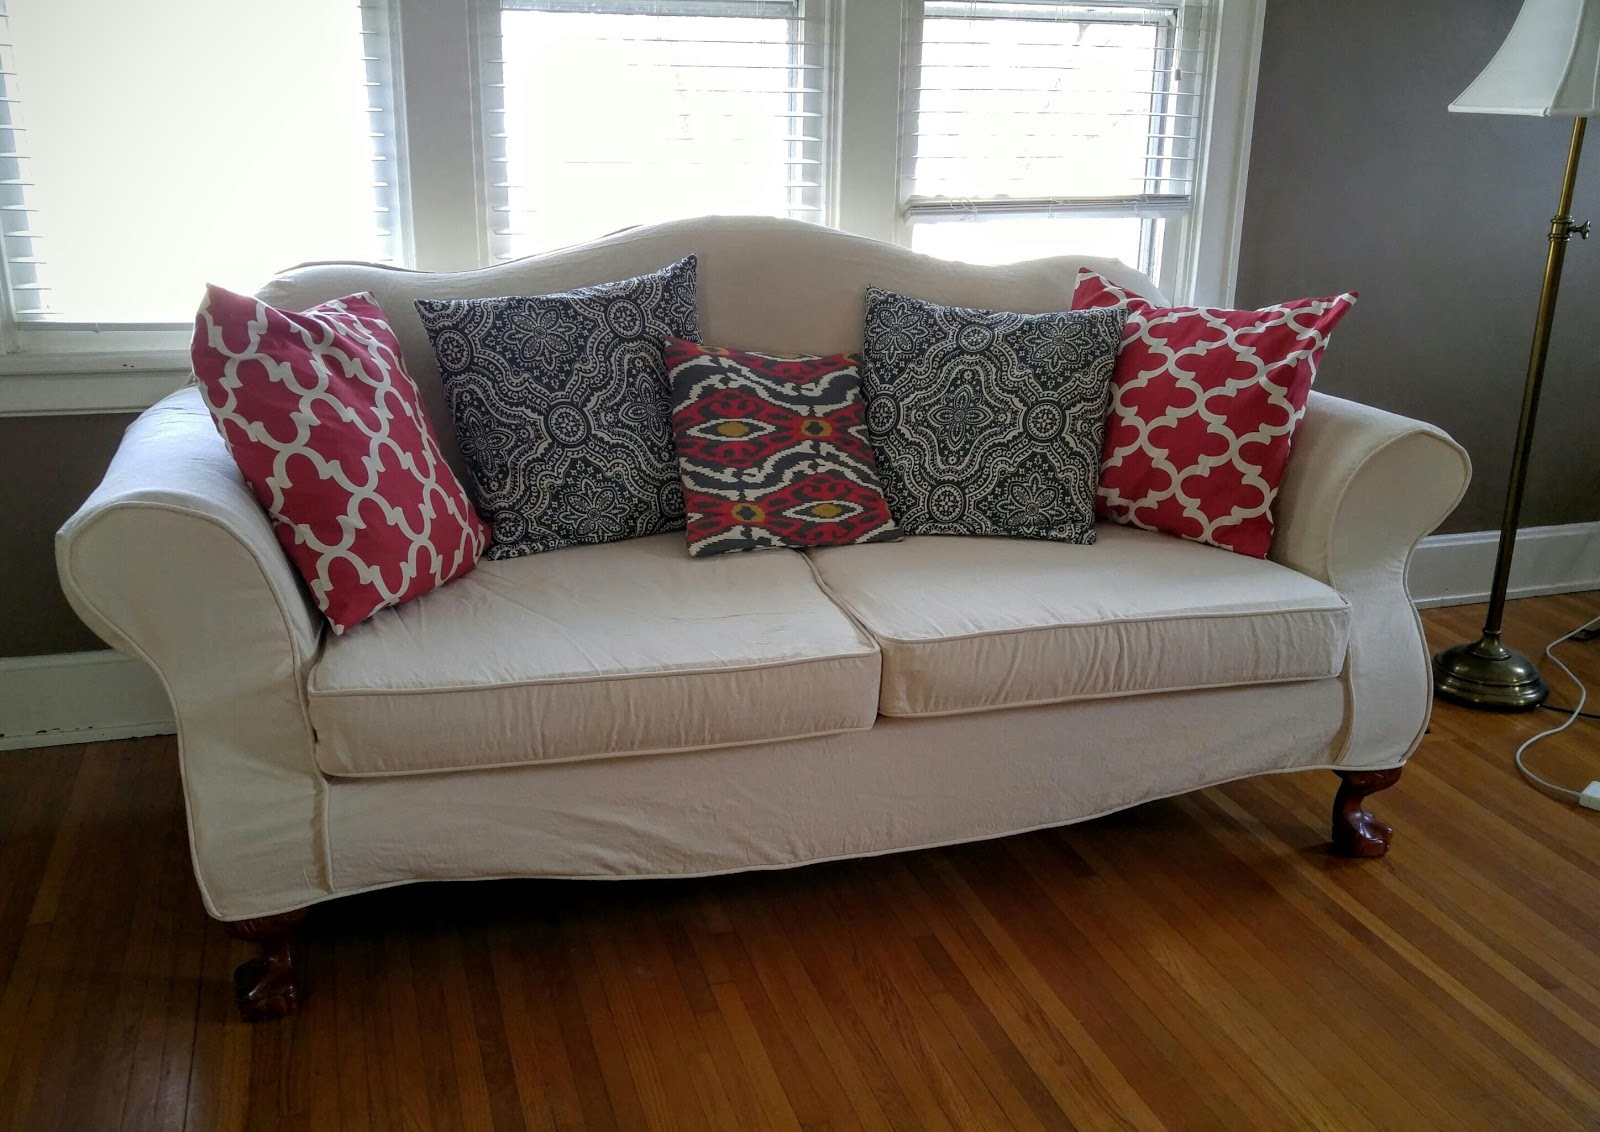 Camelback Sofa Slipcovers 3 Cushion Pictures To Pin On Pinterest Pinsdaddy